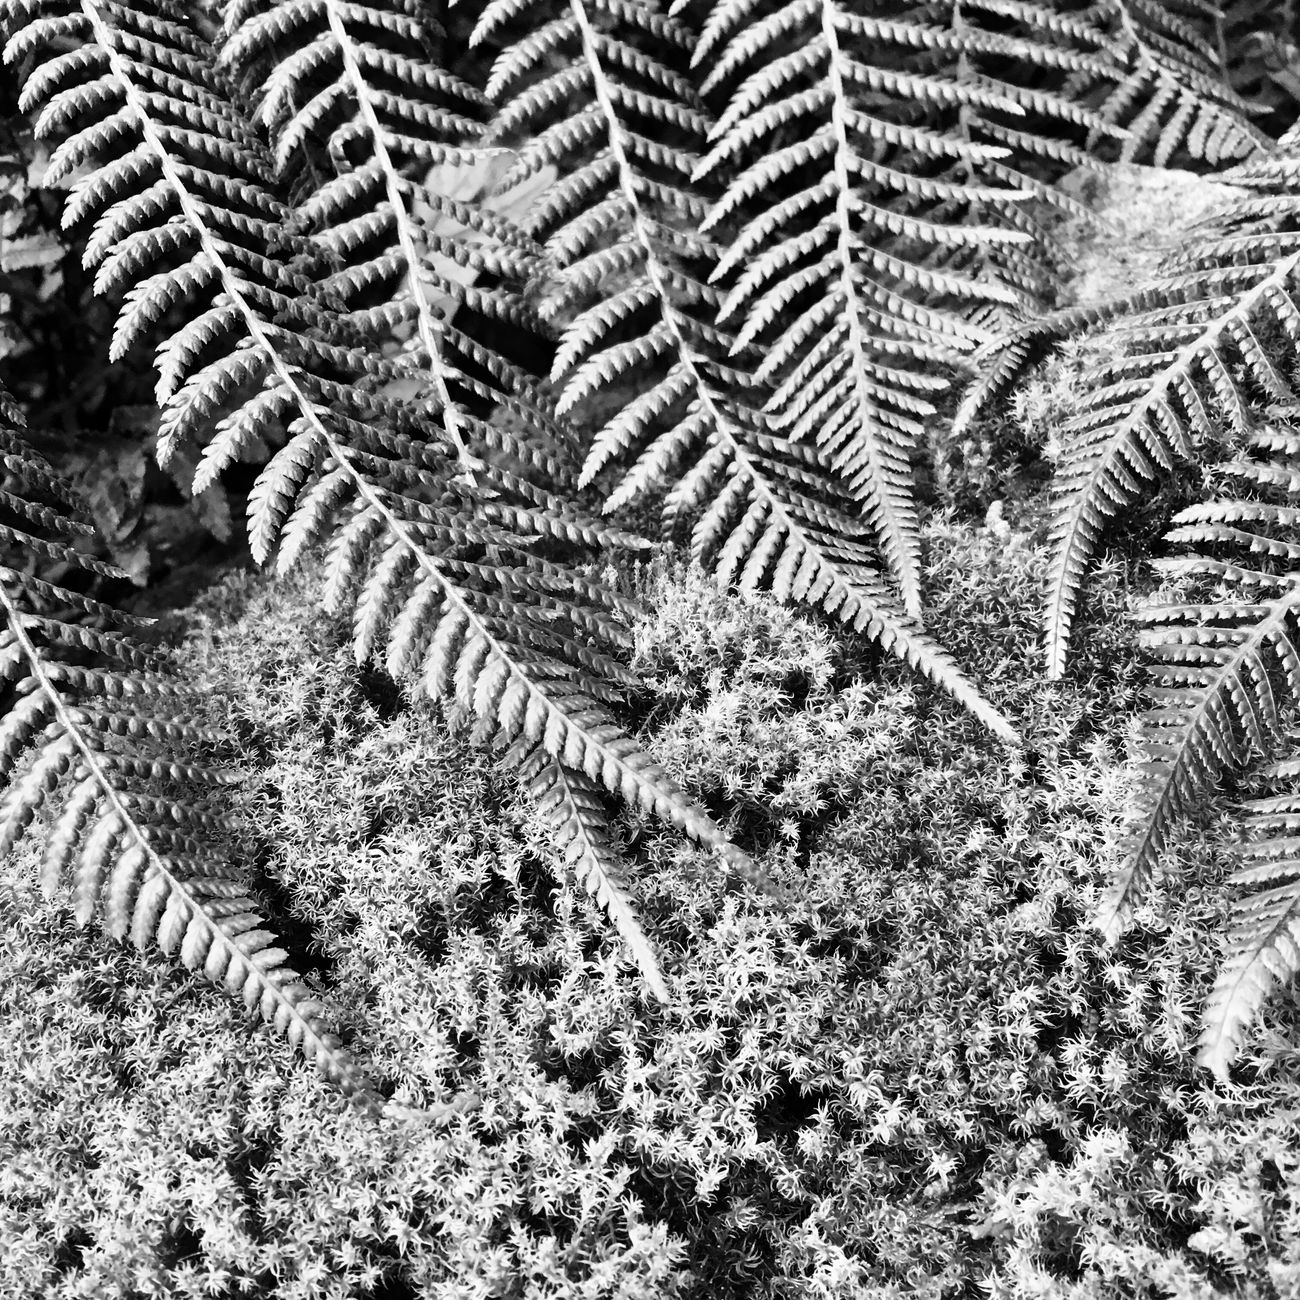 Fern Moss Nature Pattern High Angle View No People Outdoors Day Growth Close-up IPhoneography Beauty In Nature Black & White EyeEm Nature Lover